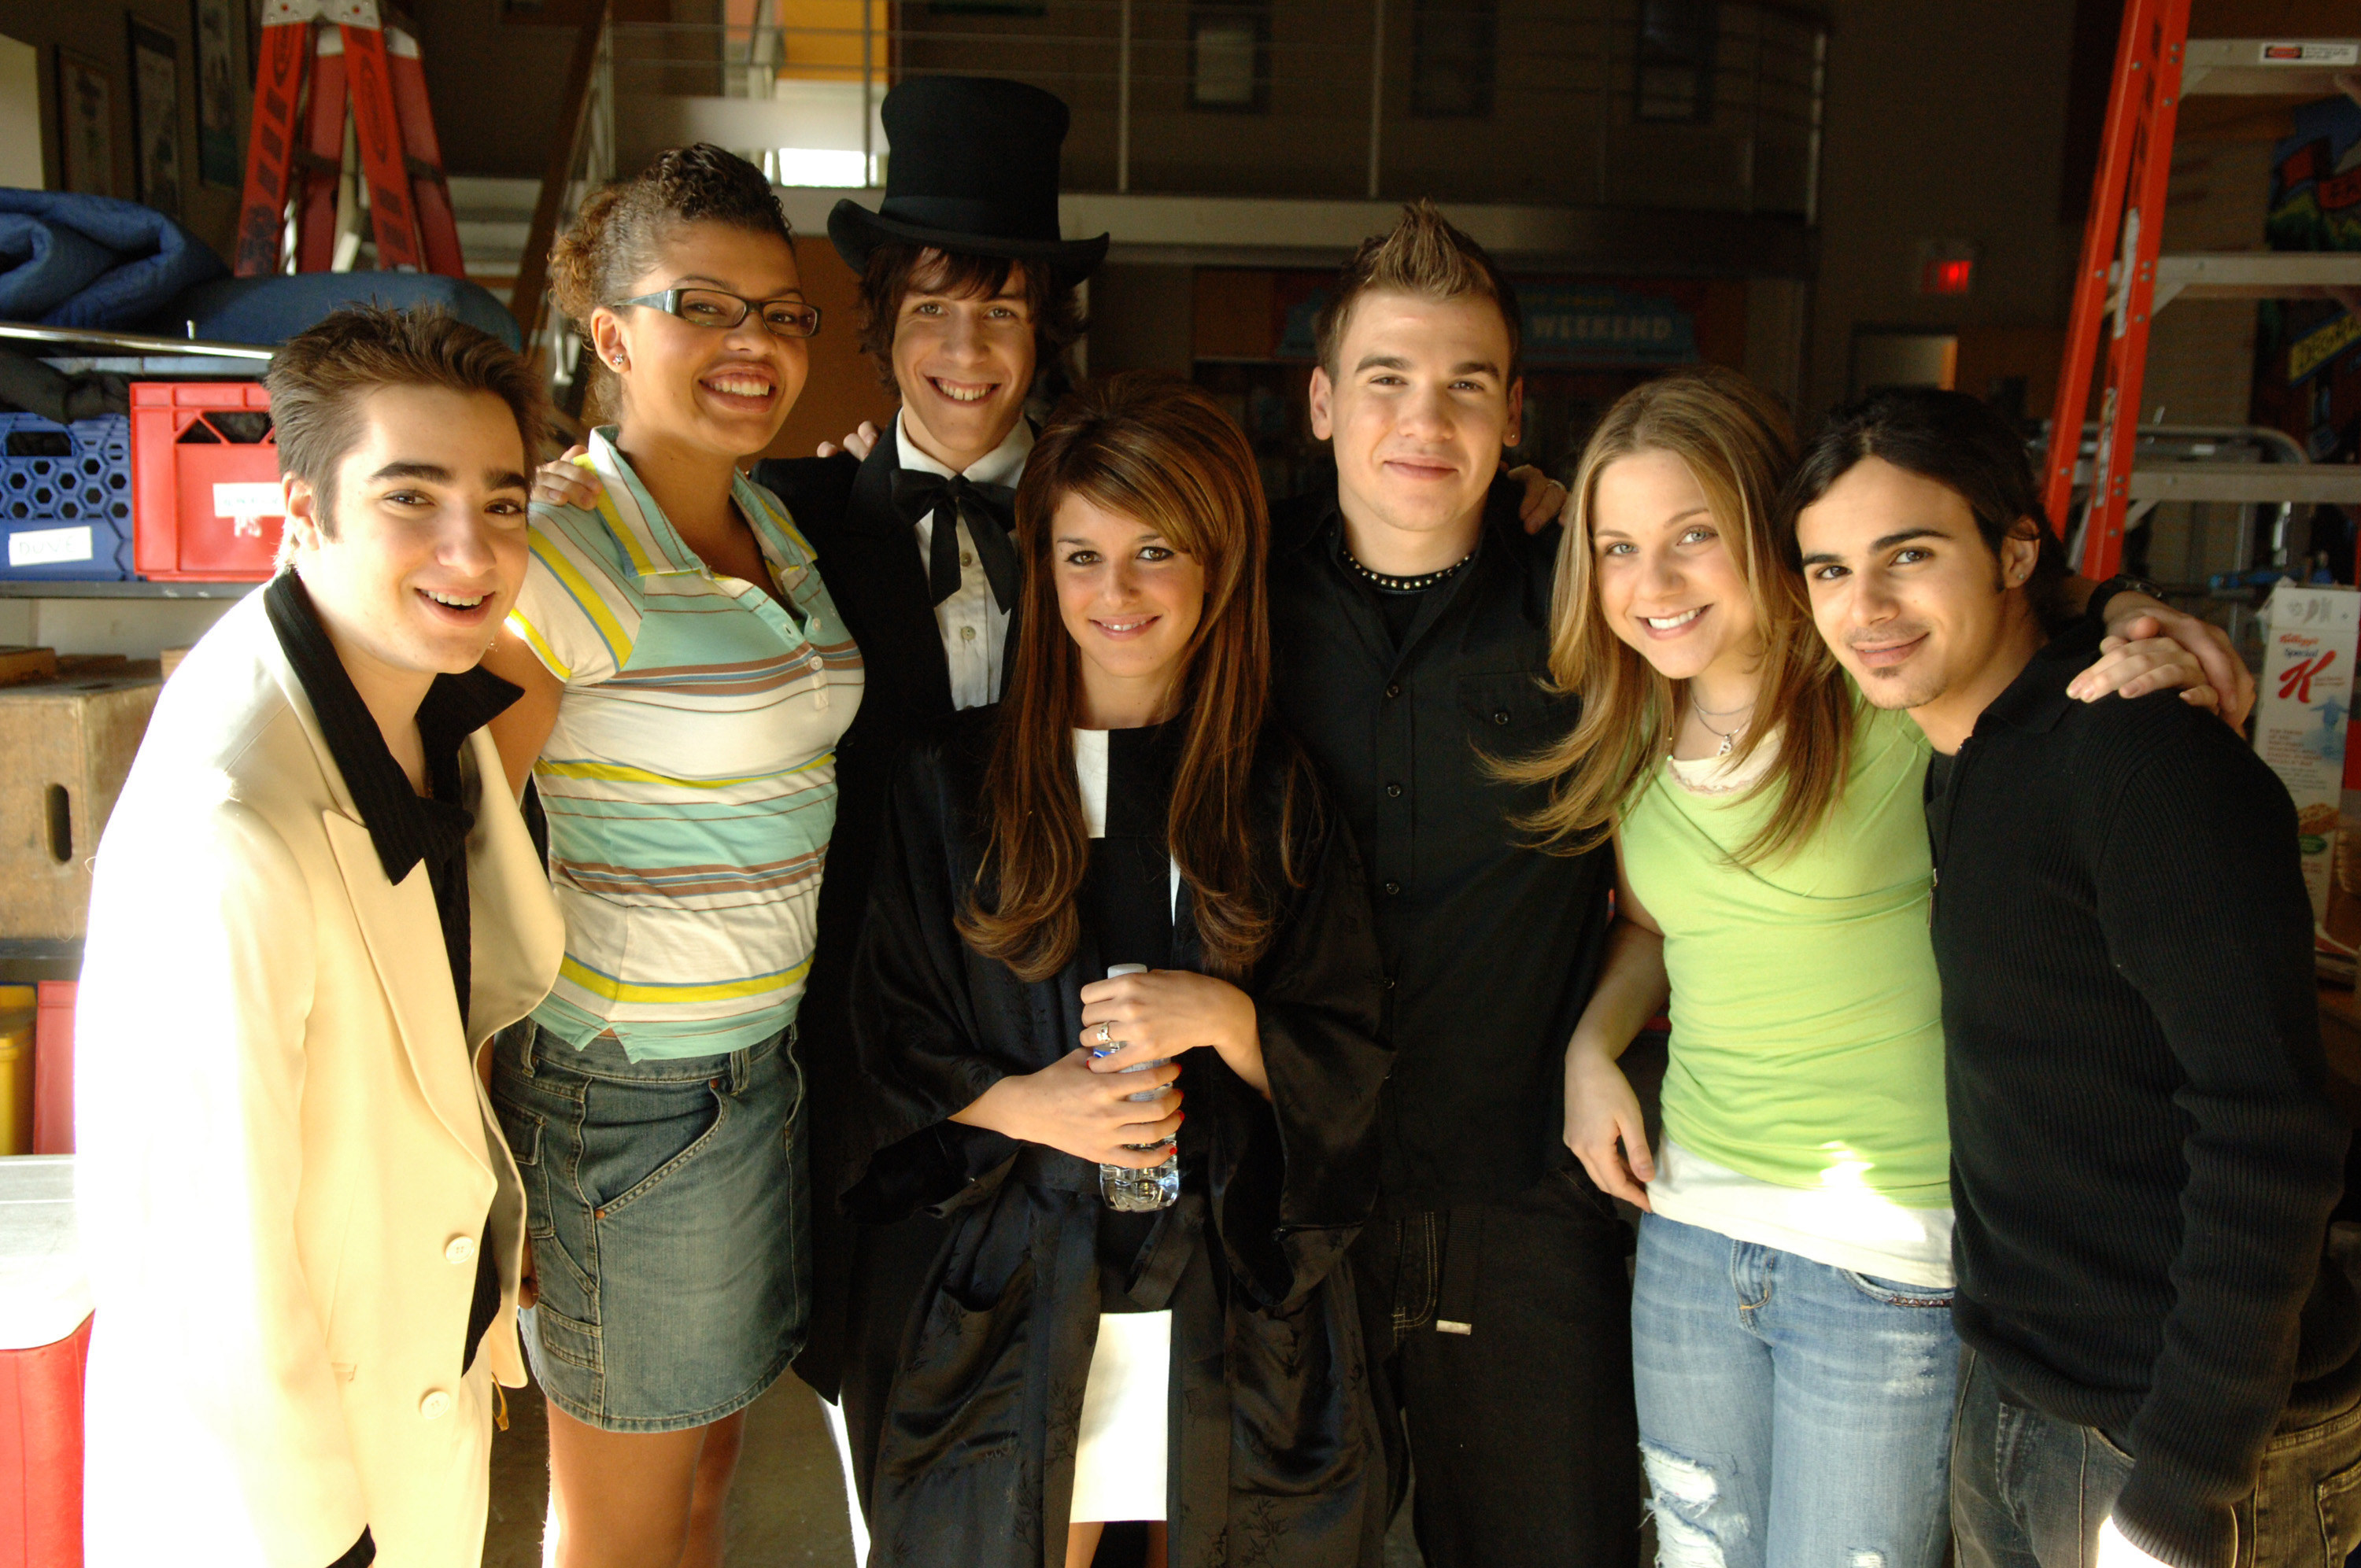 A portion of the cast pose for a photo on set